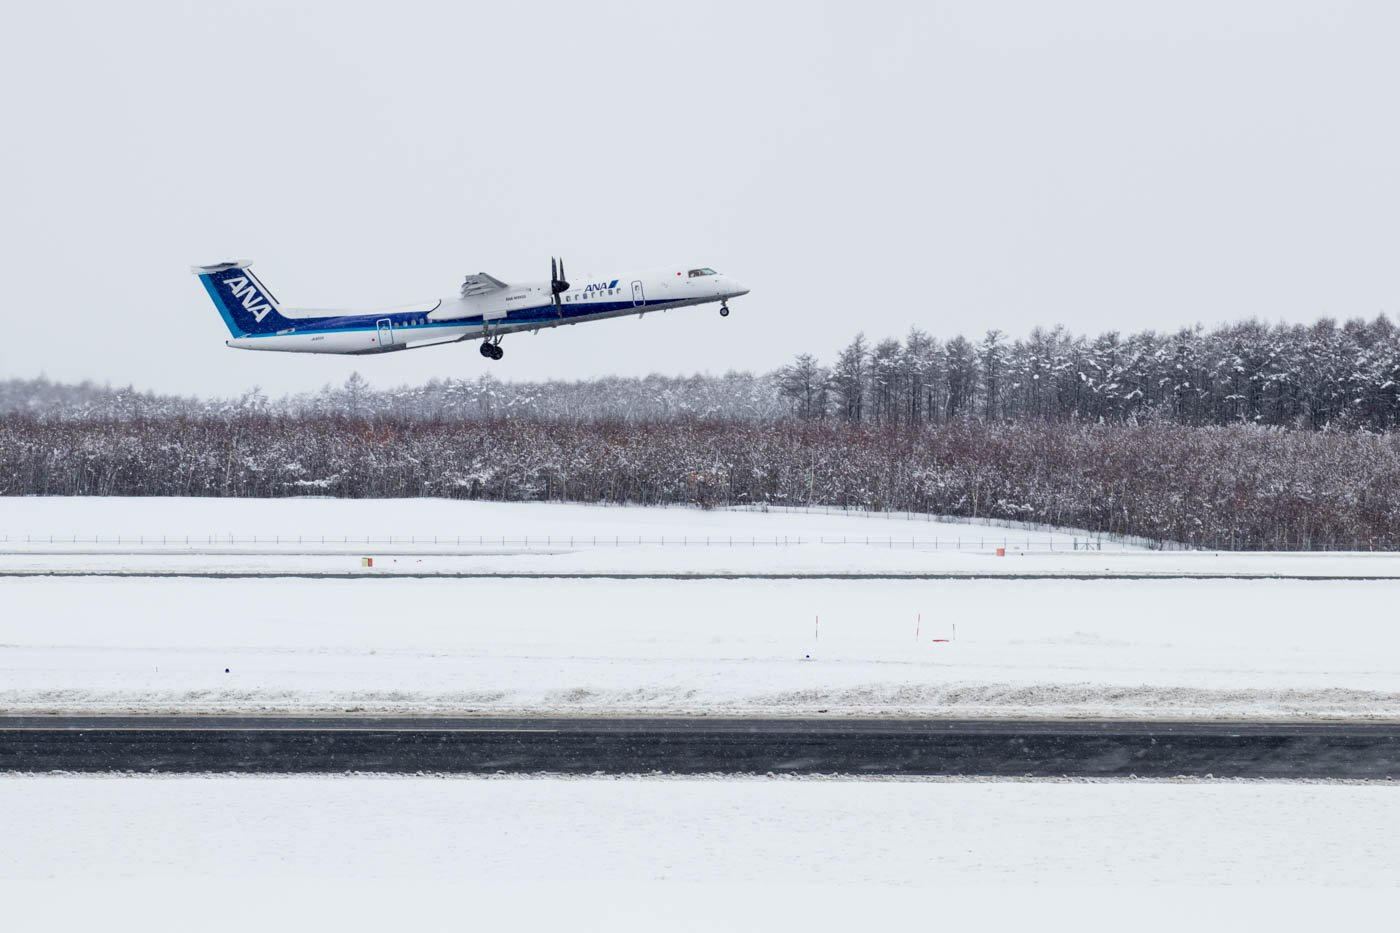 ANA DHC-8-400 Departing CTS